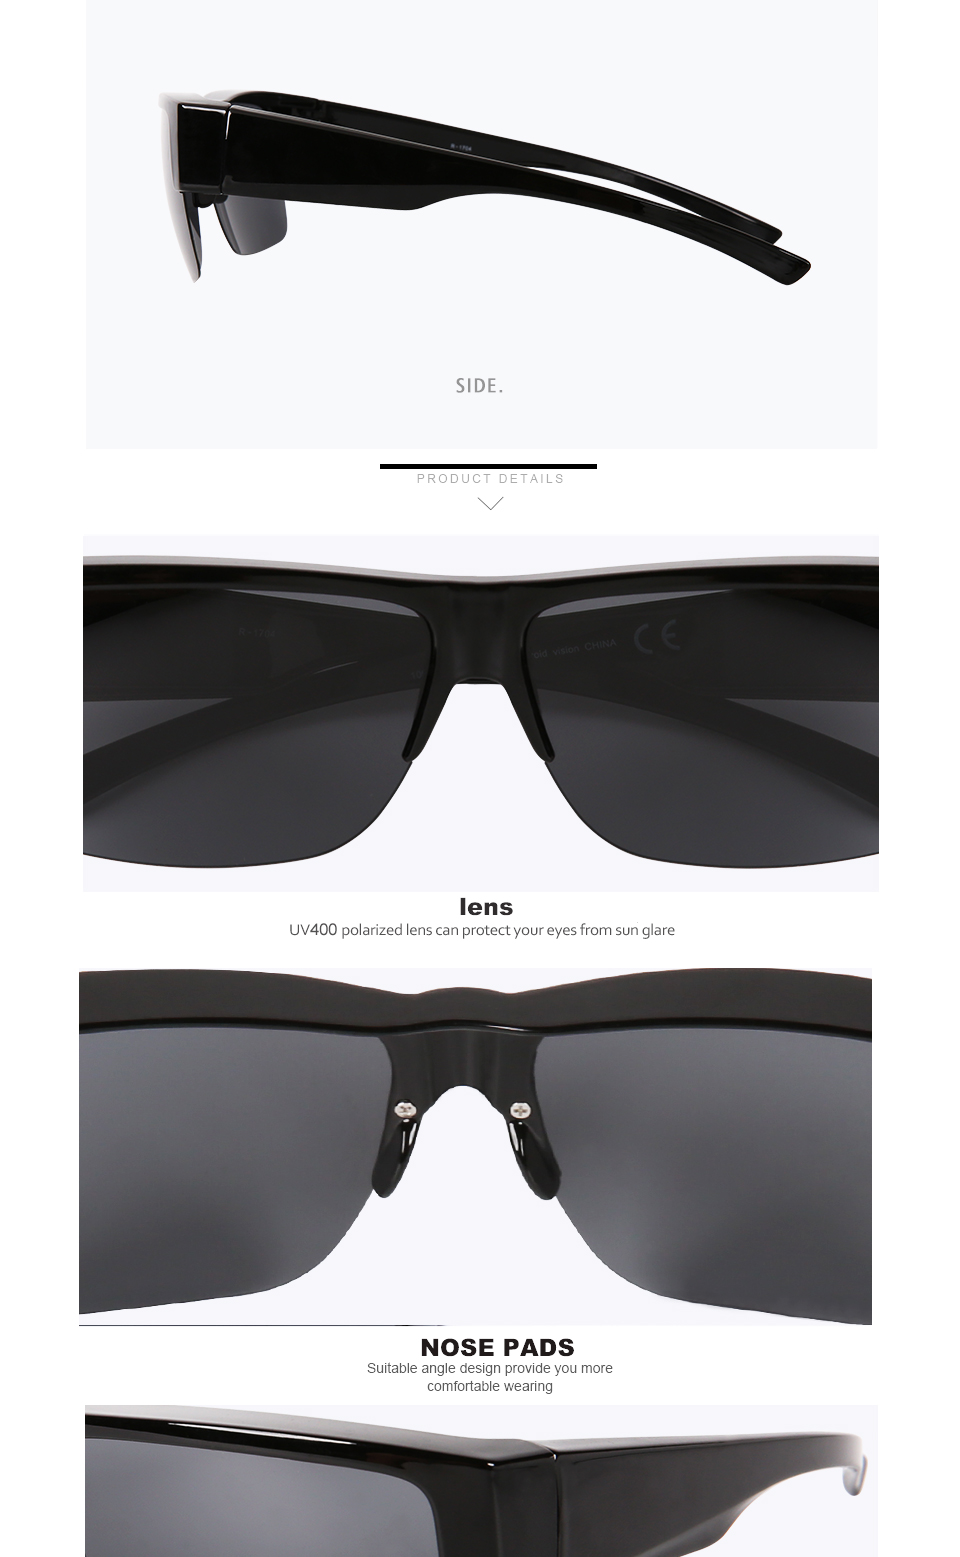 7c65aad32e6 oversized sunglasses are necessary for us in sunning days especially hot  summer. The reason why best sunglasses for men are so popular is that they  are not ...